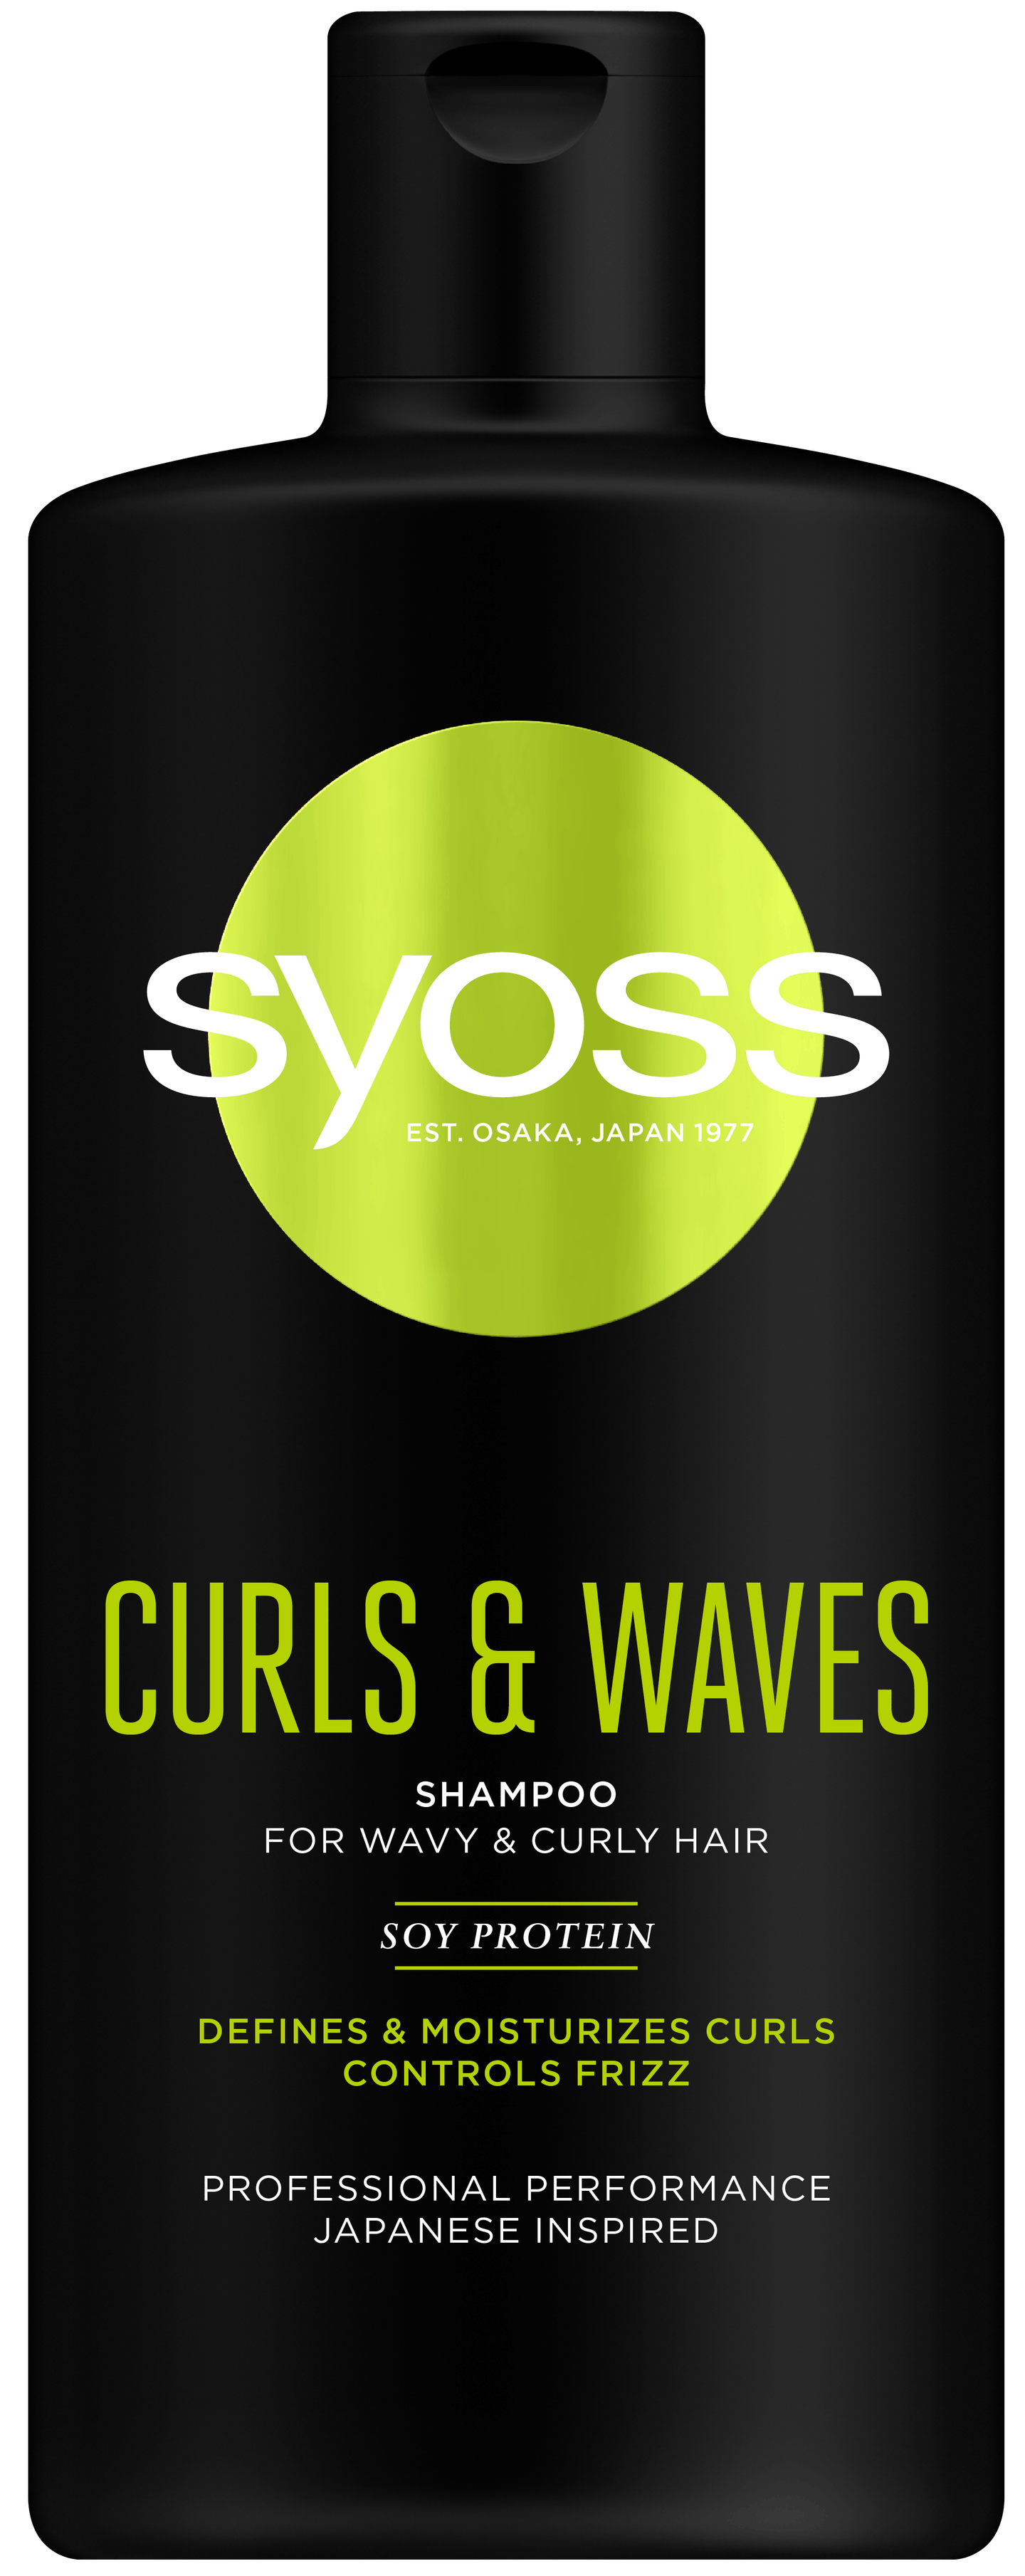 Curls & Waves Sampon